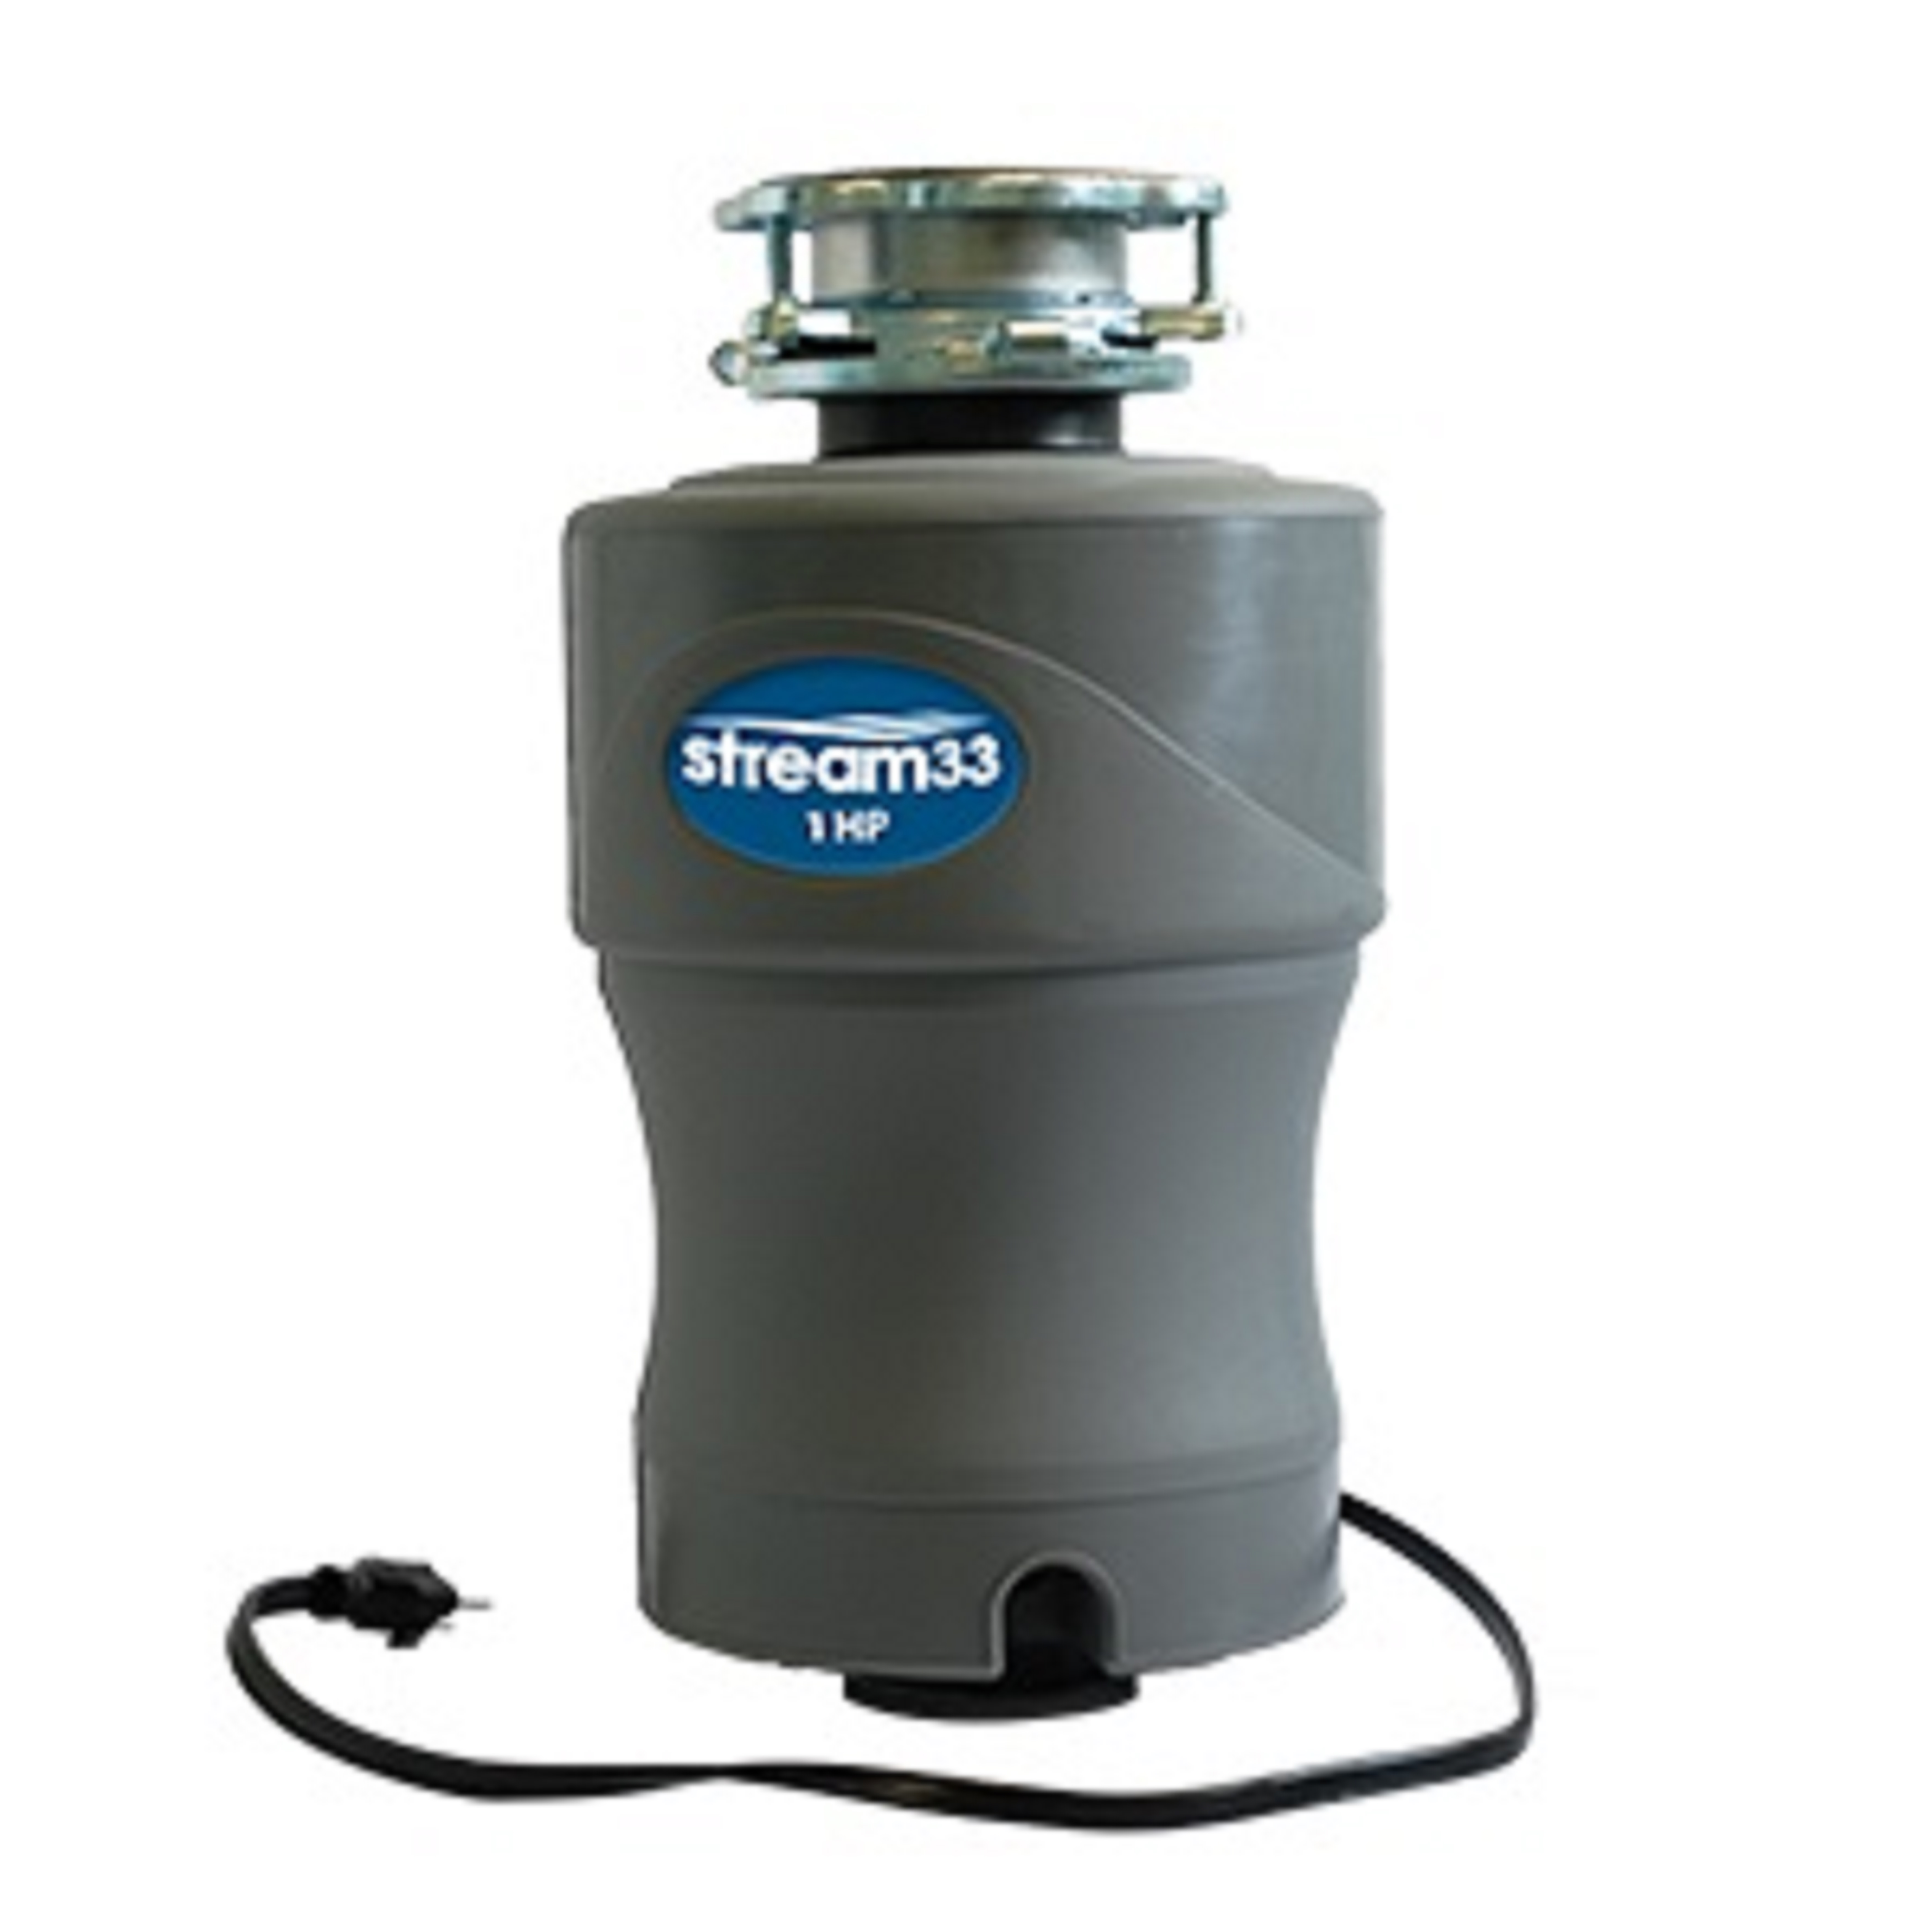 Stream33 1 HP Garbage Disposal (model no. S33WC1WC)